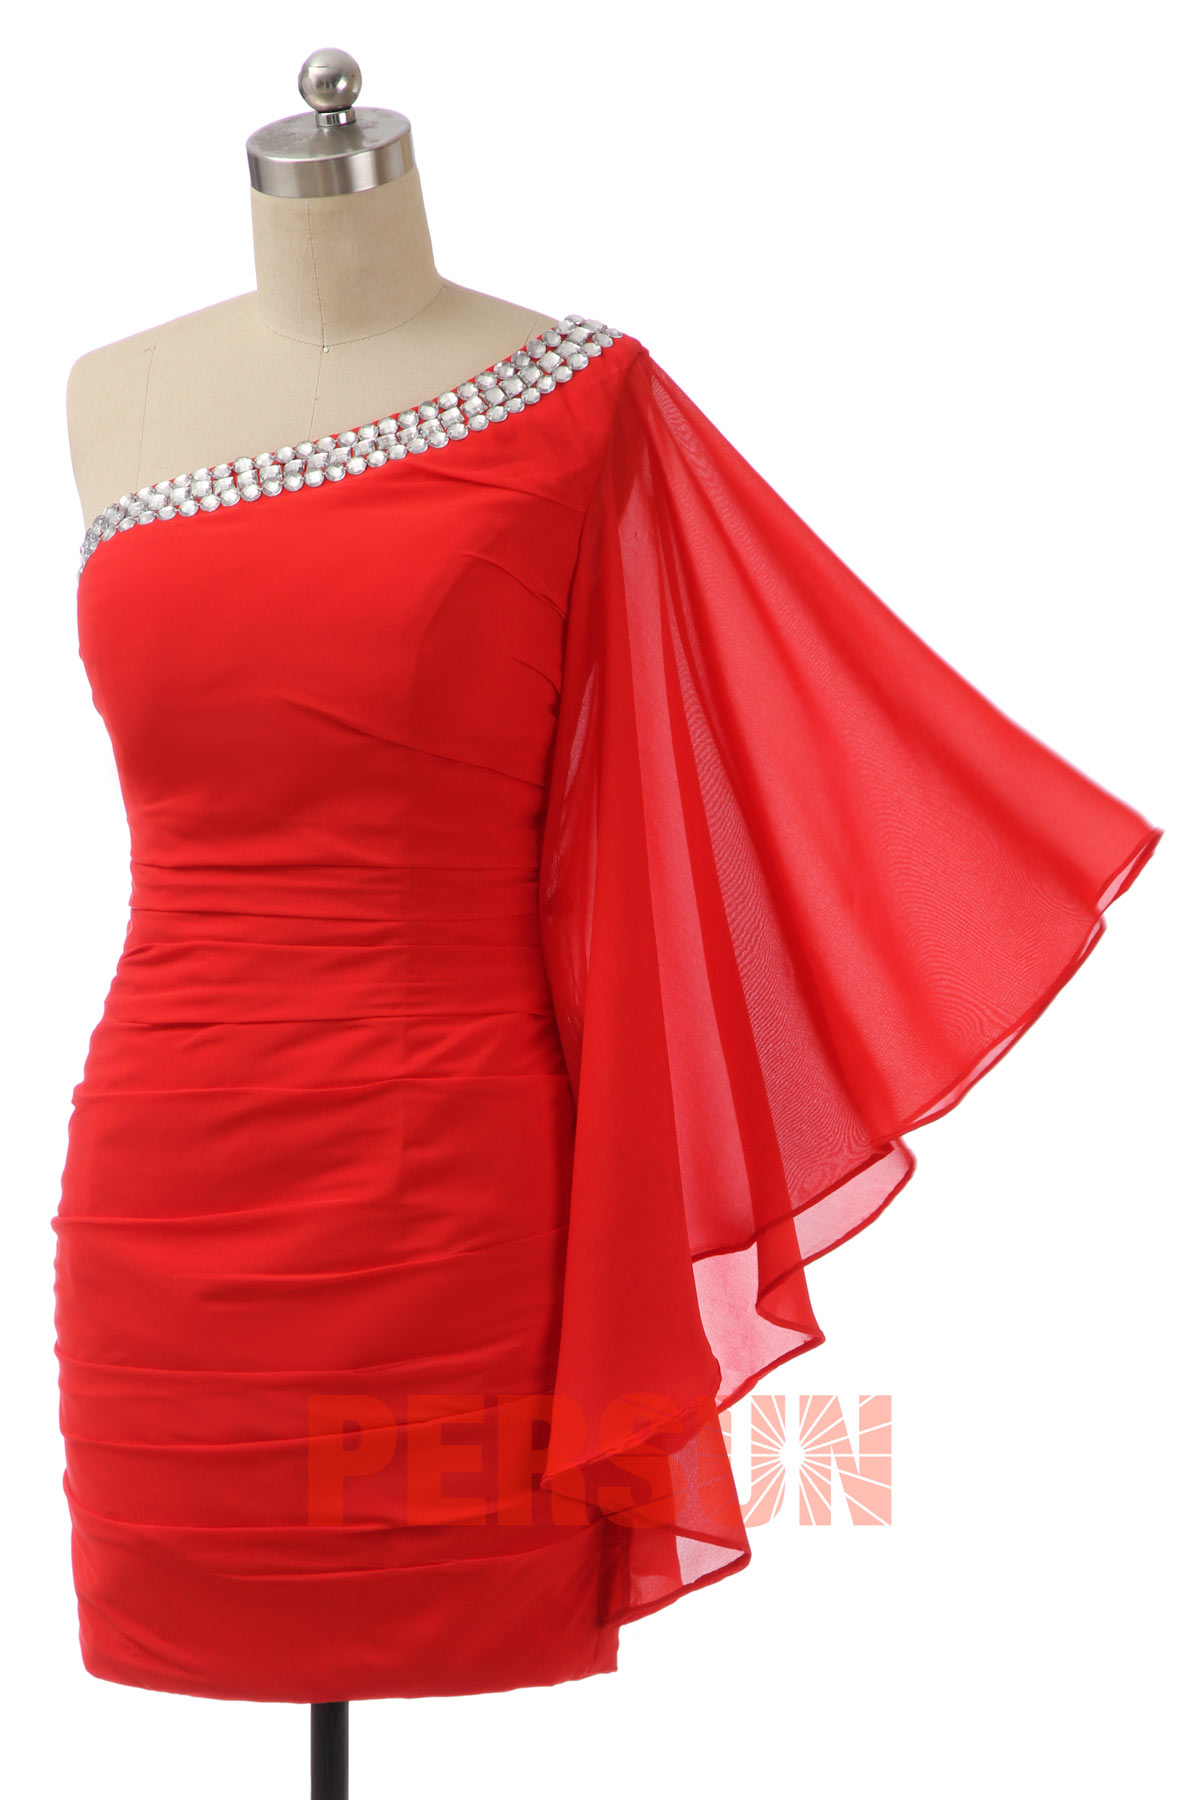 Beading Side Draping One Shoulder Tencel Column Semi Formal Cocktail Dress